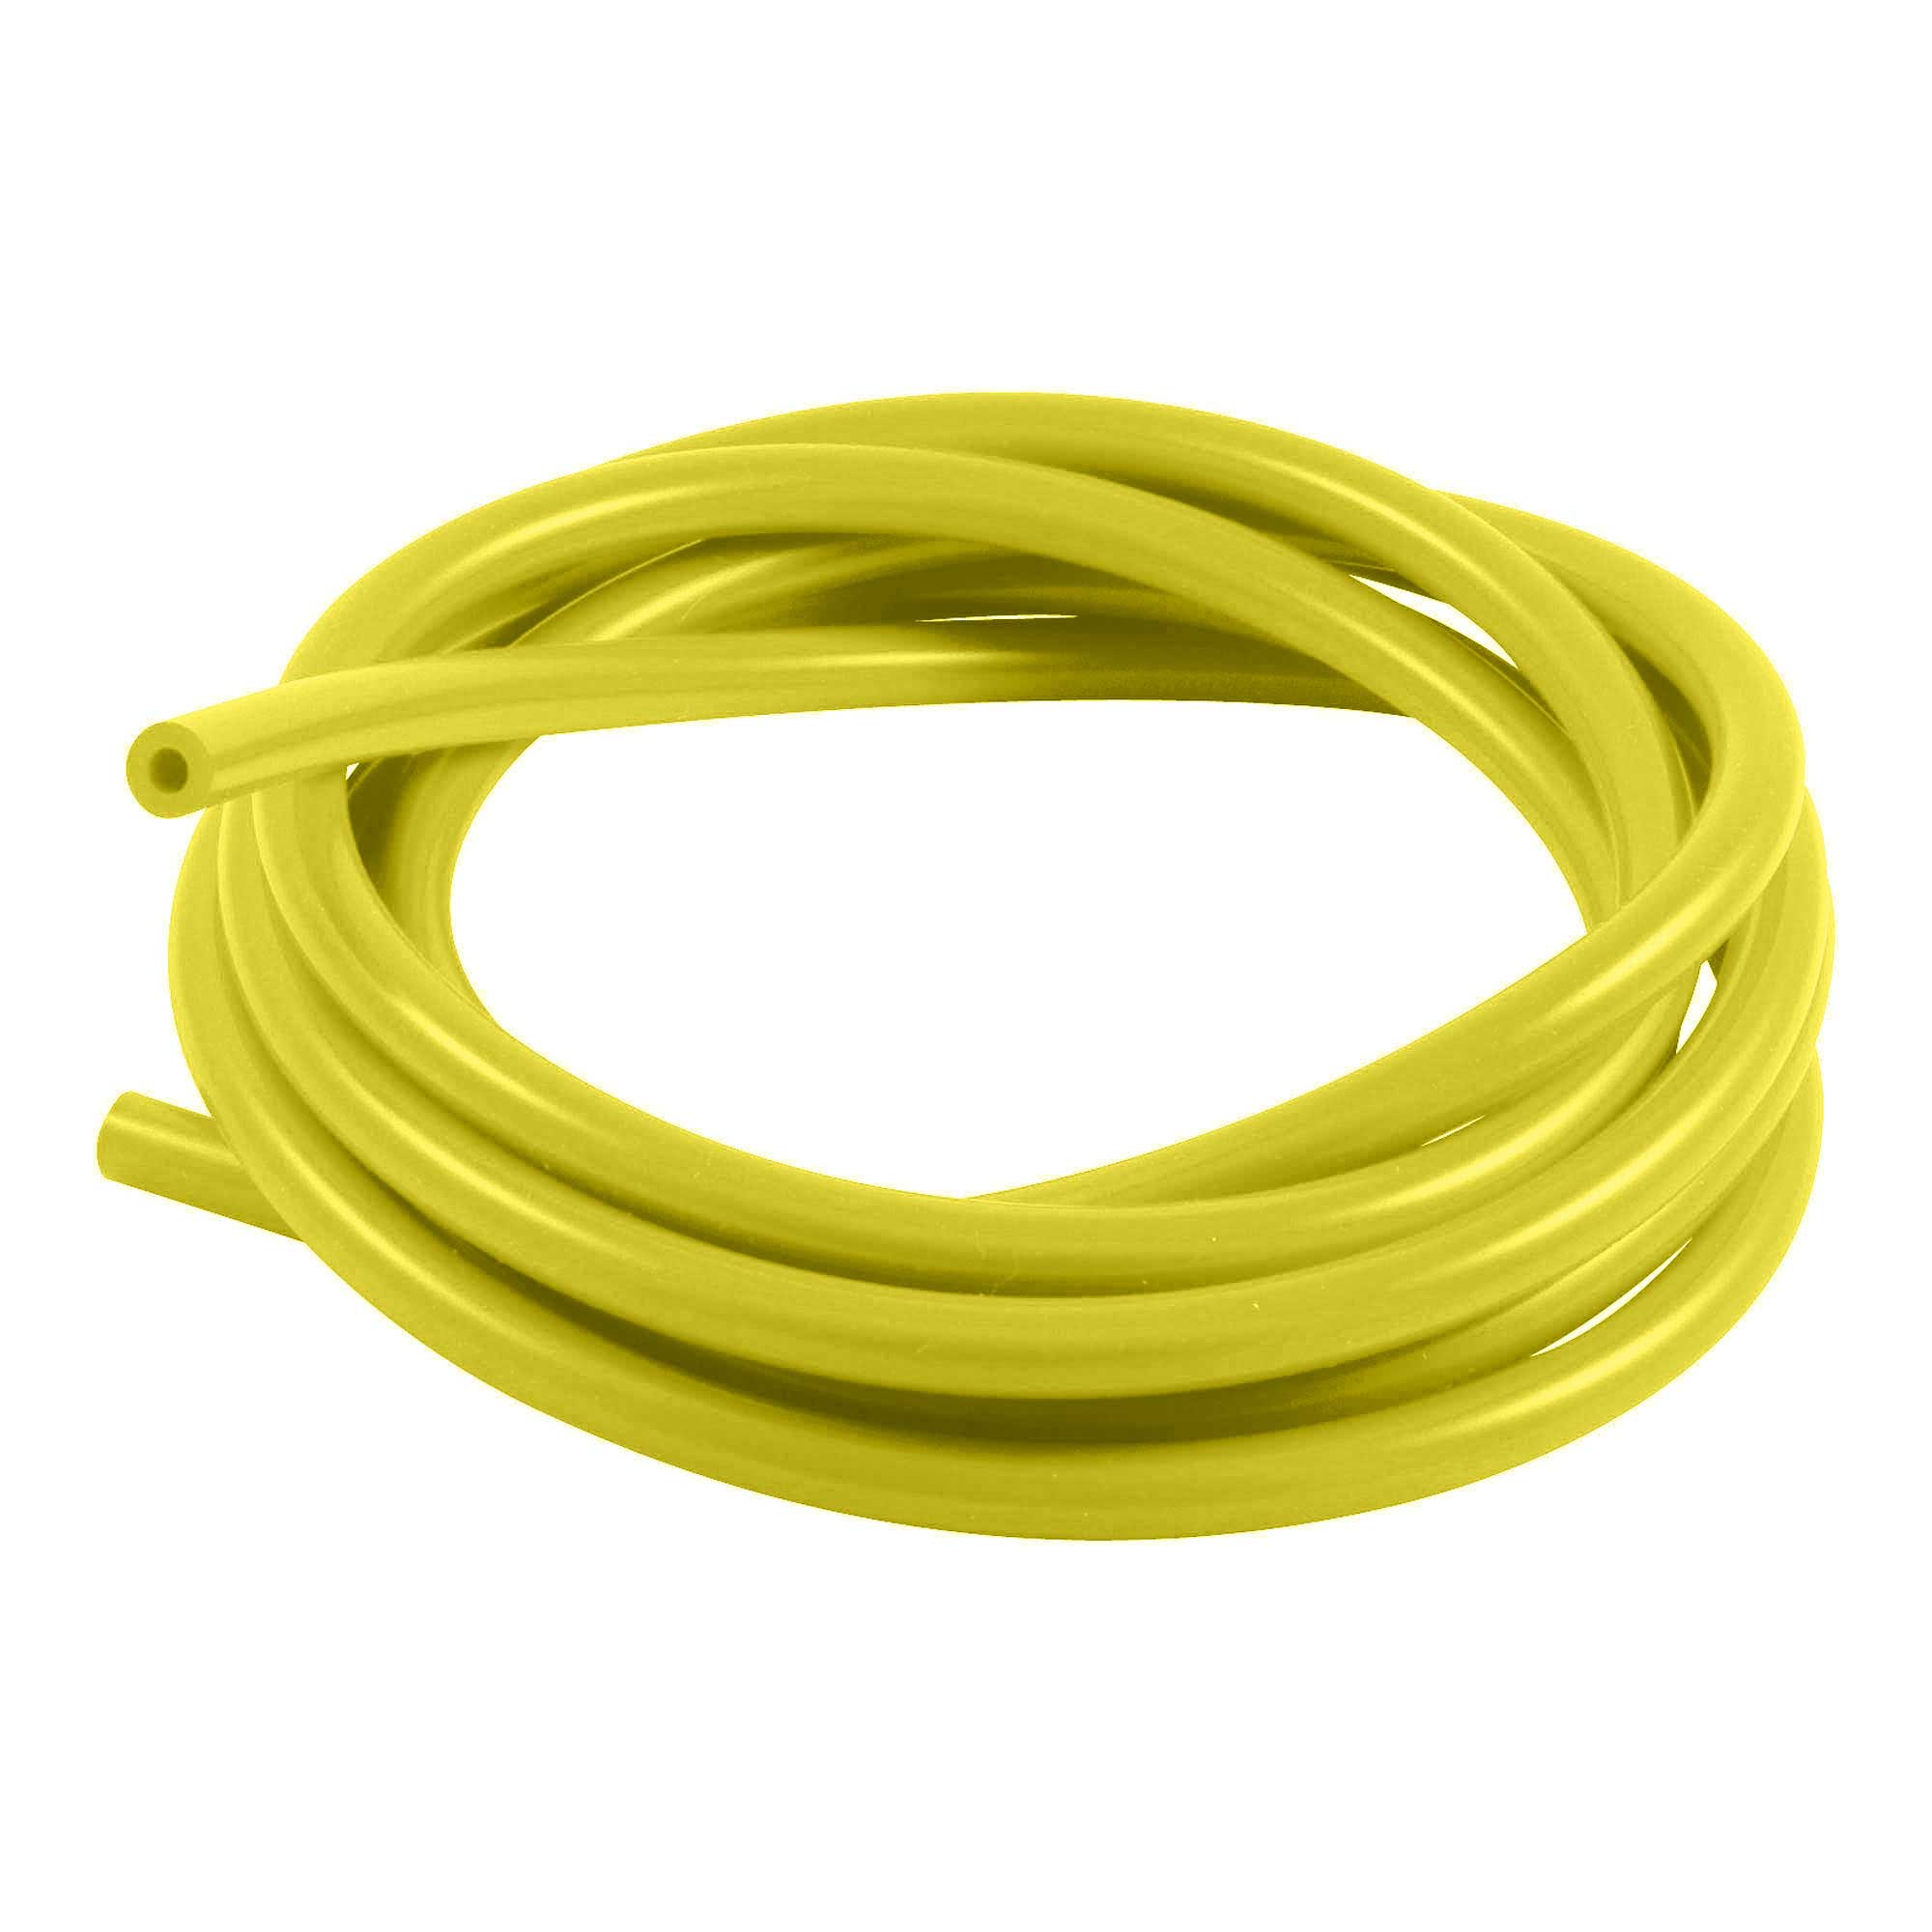 Samco Silicone 3m//3 Metre Rubber Vacuum Tubing//Hose//Pipe 8mm Bore Red